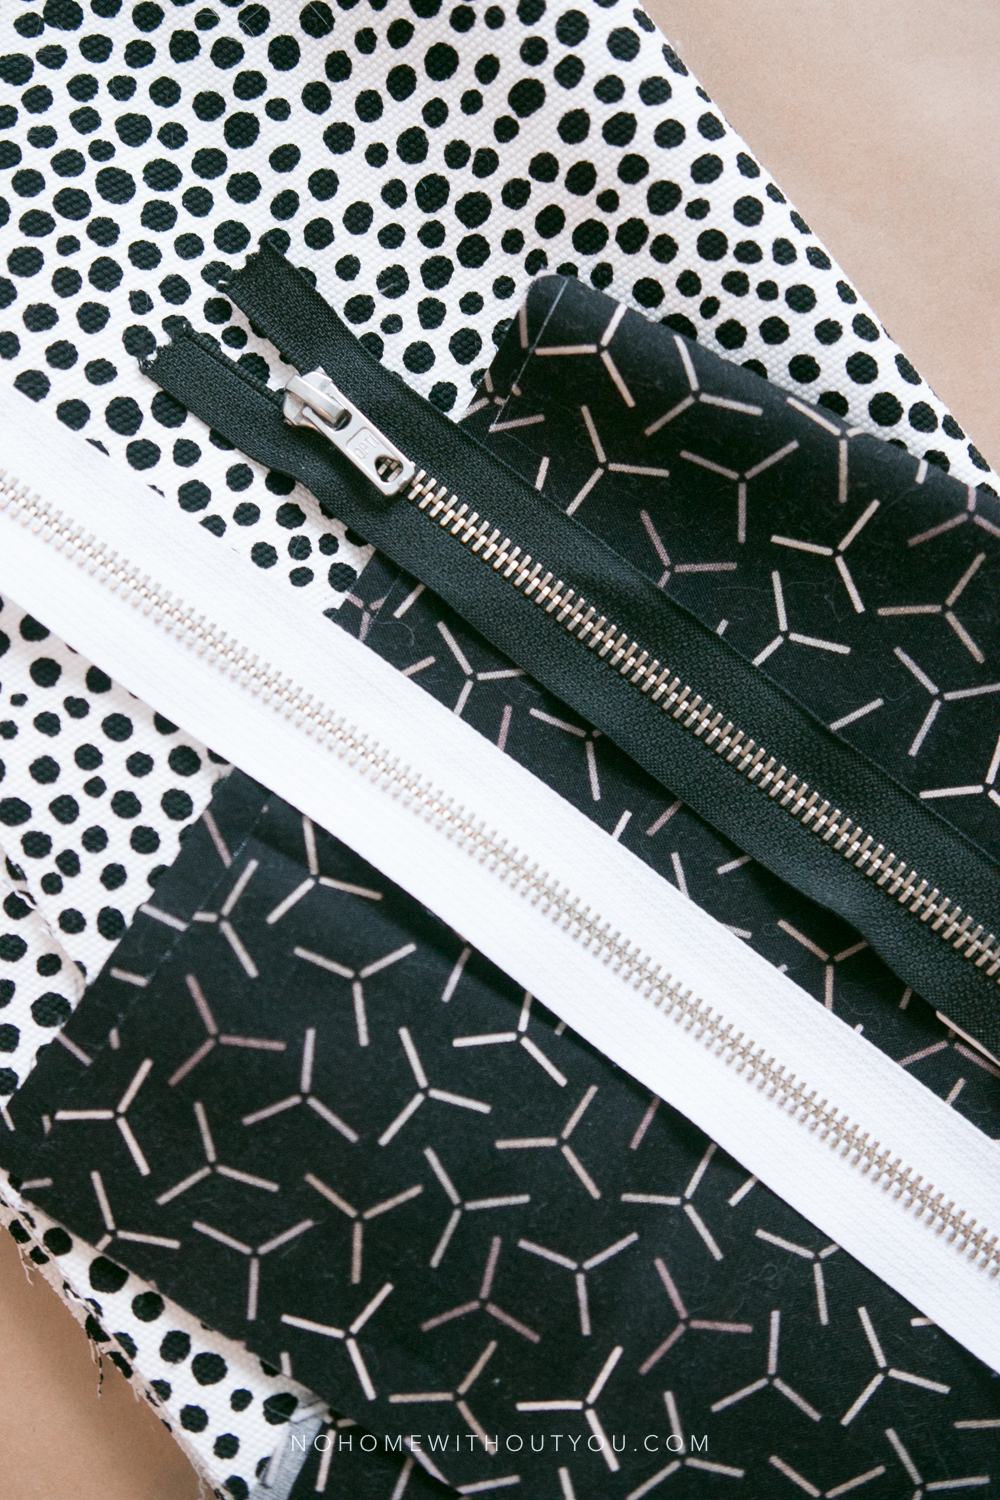 DIY-dotted-backpack-free-pattern-No-home-without-you-blog-2-of-26